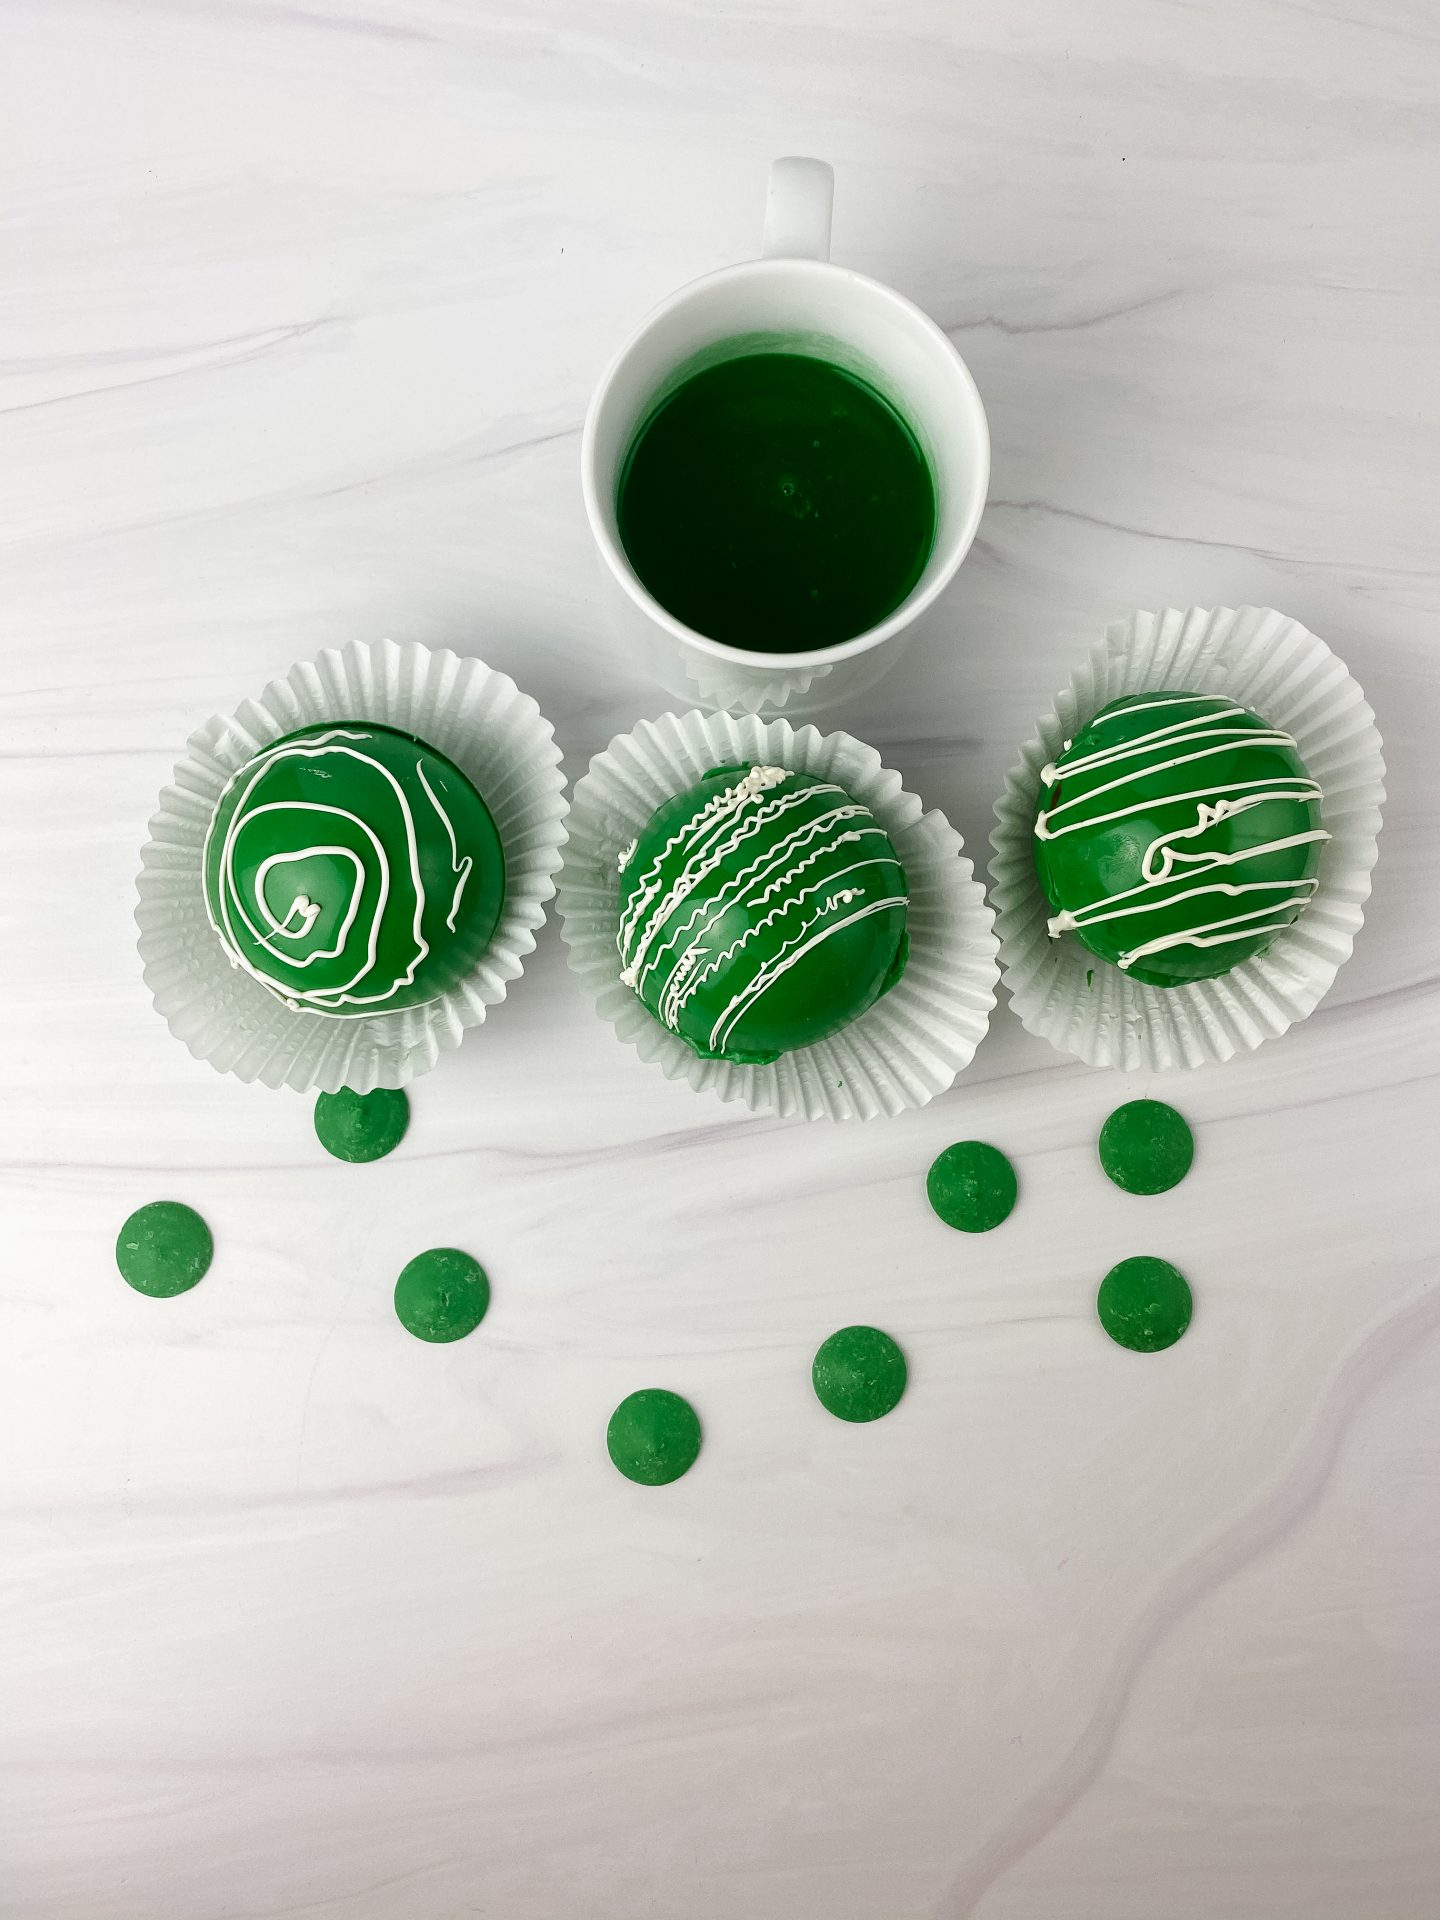 st. Patrick's day hot chocolate bombs